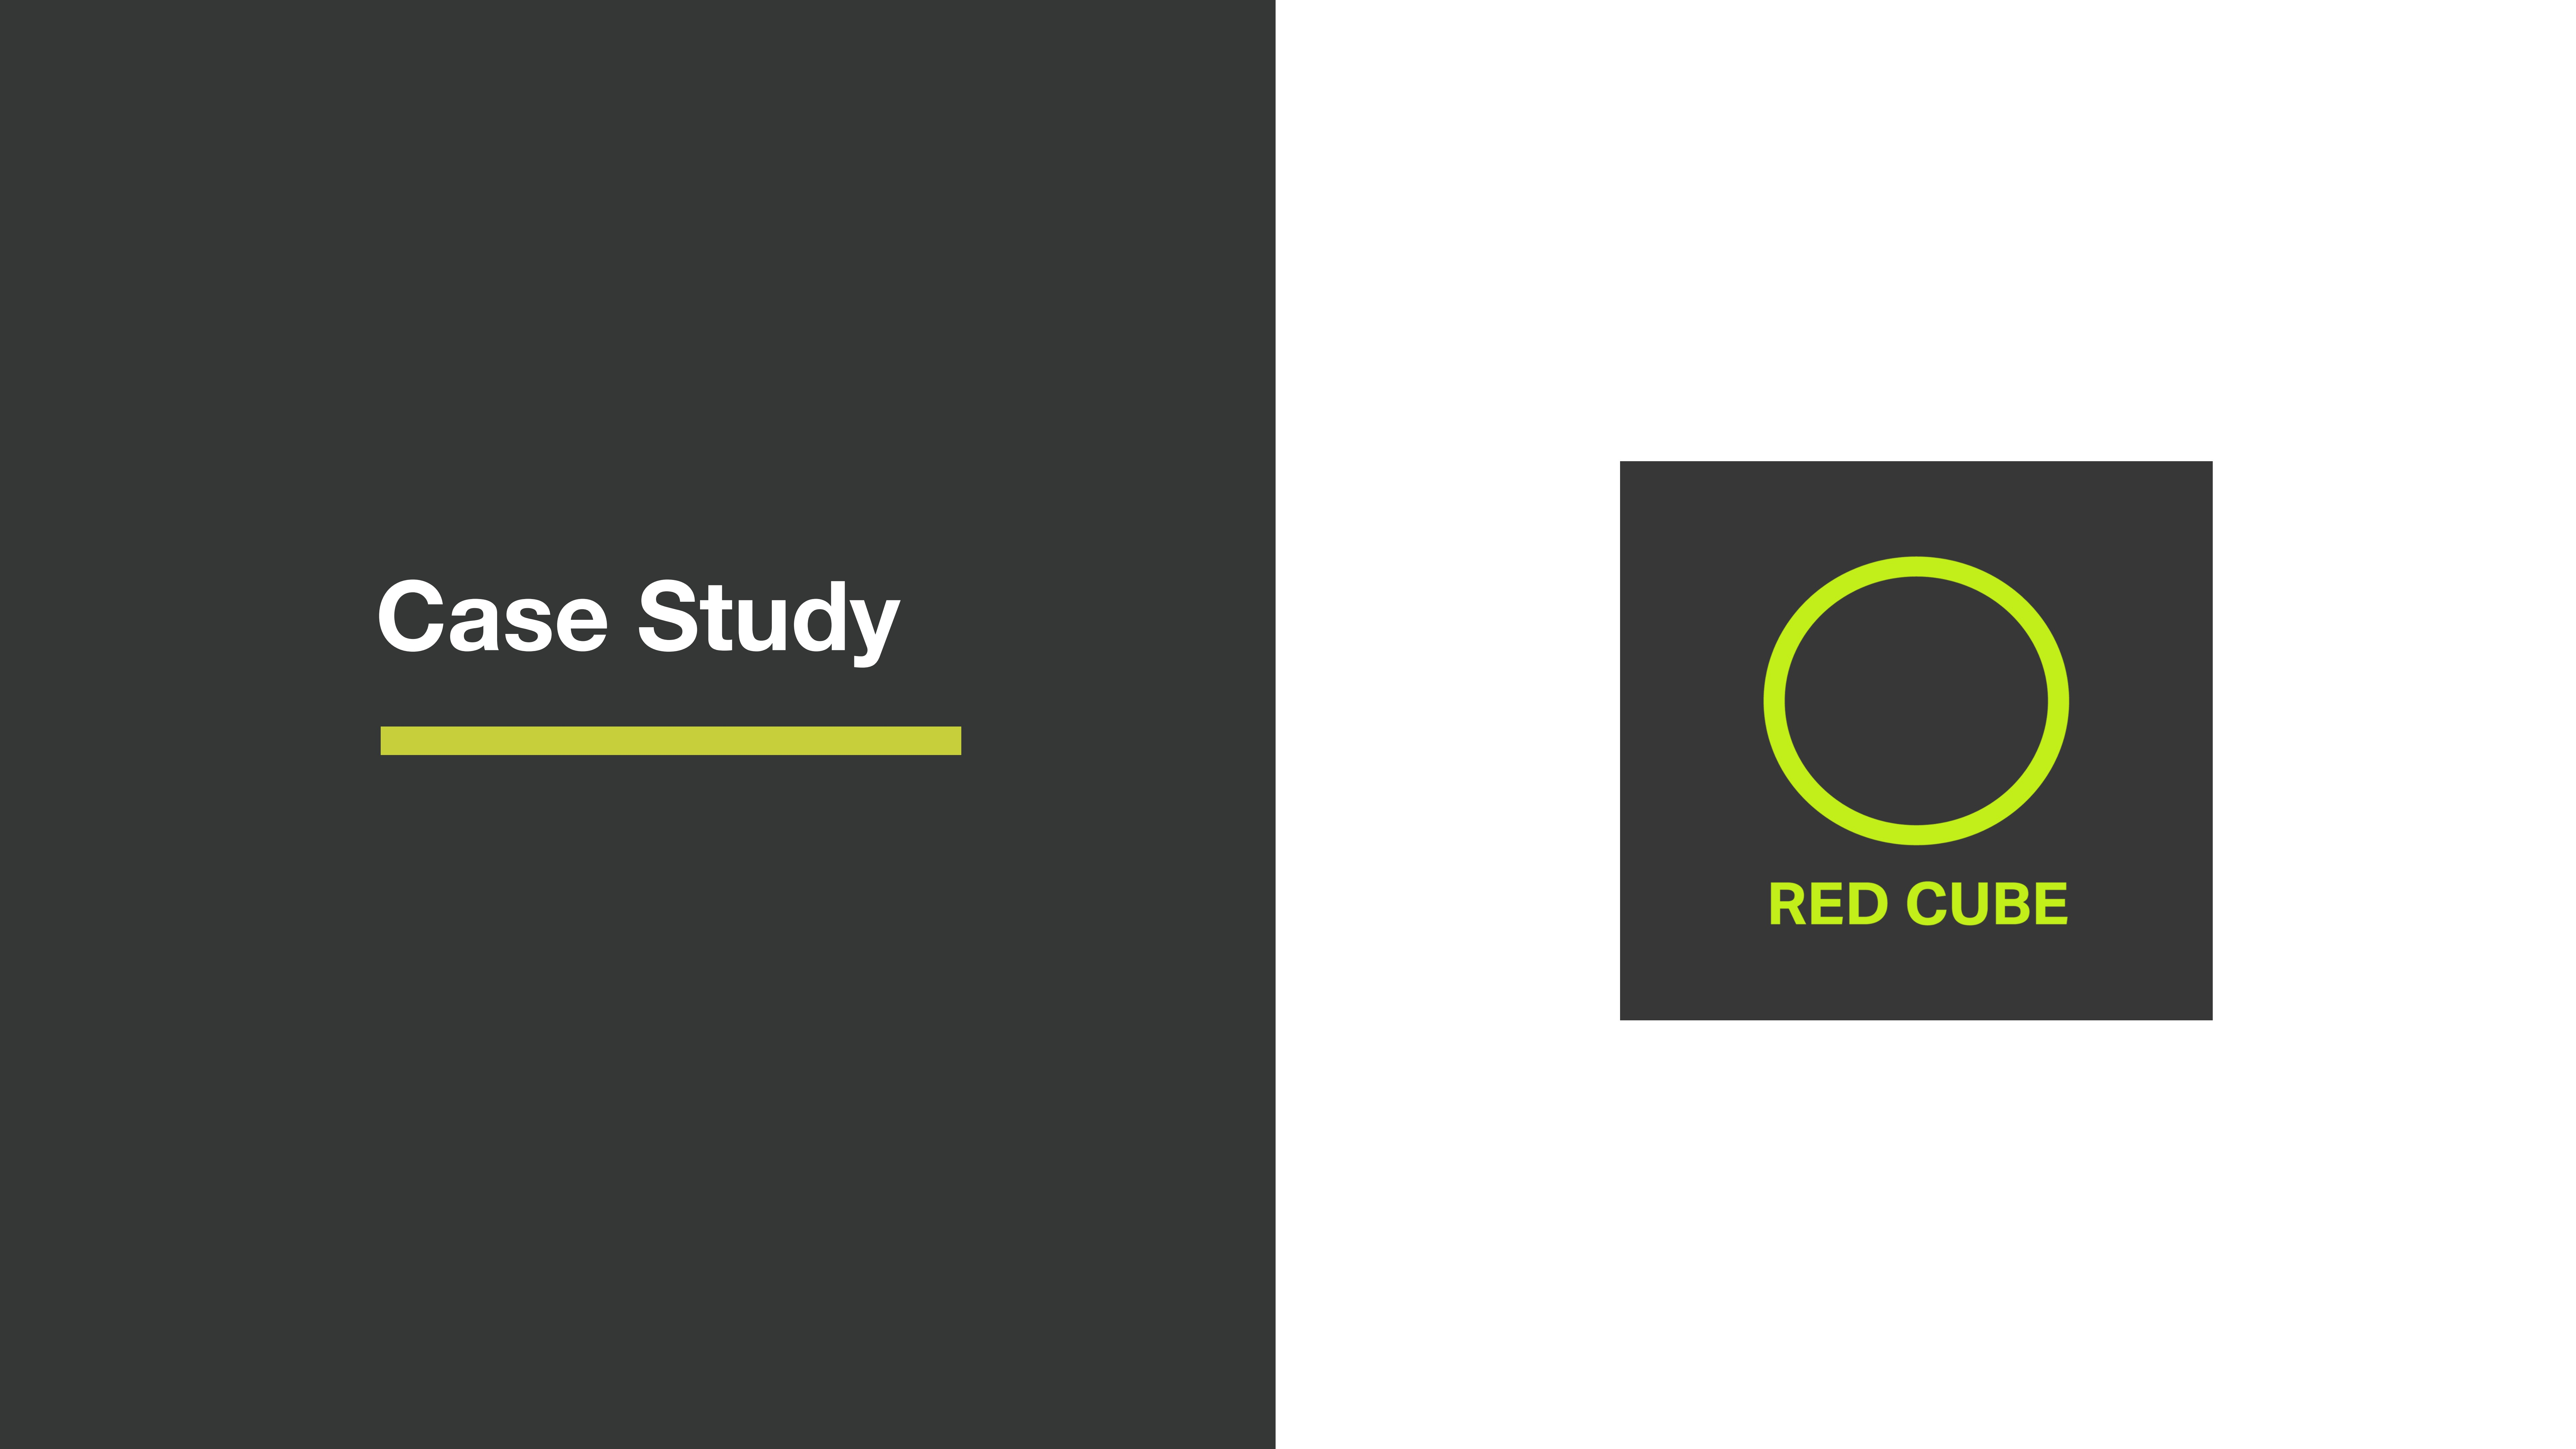 Red Cube Digital Marketing Case Study.pdf.174a6dd92819fc4151d94593e295ab8b.20191226112240511_05.jpg